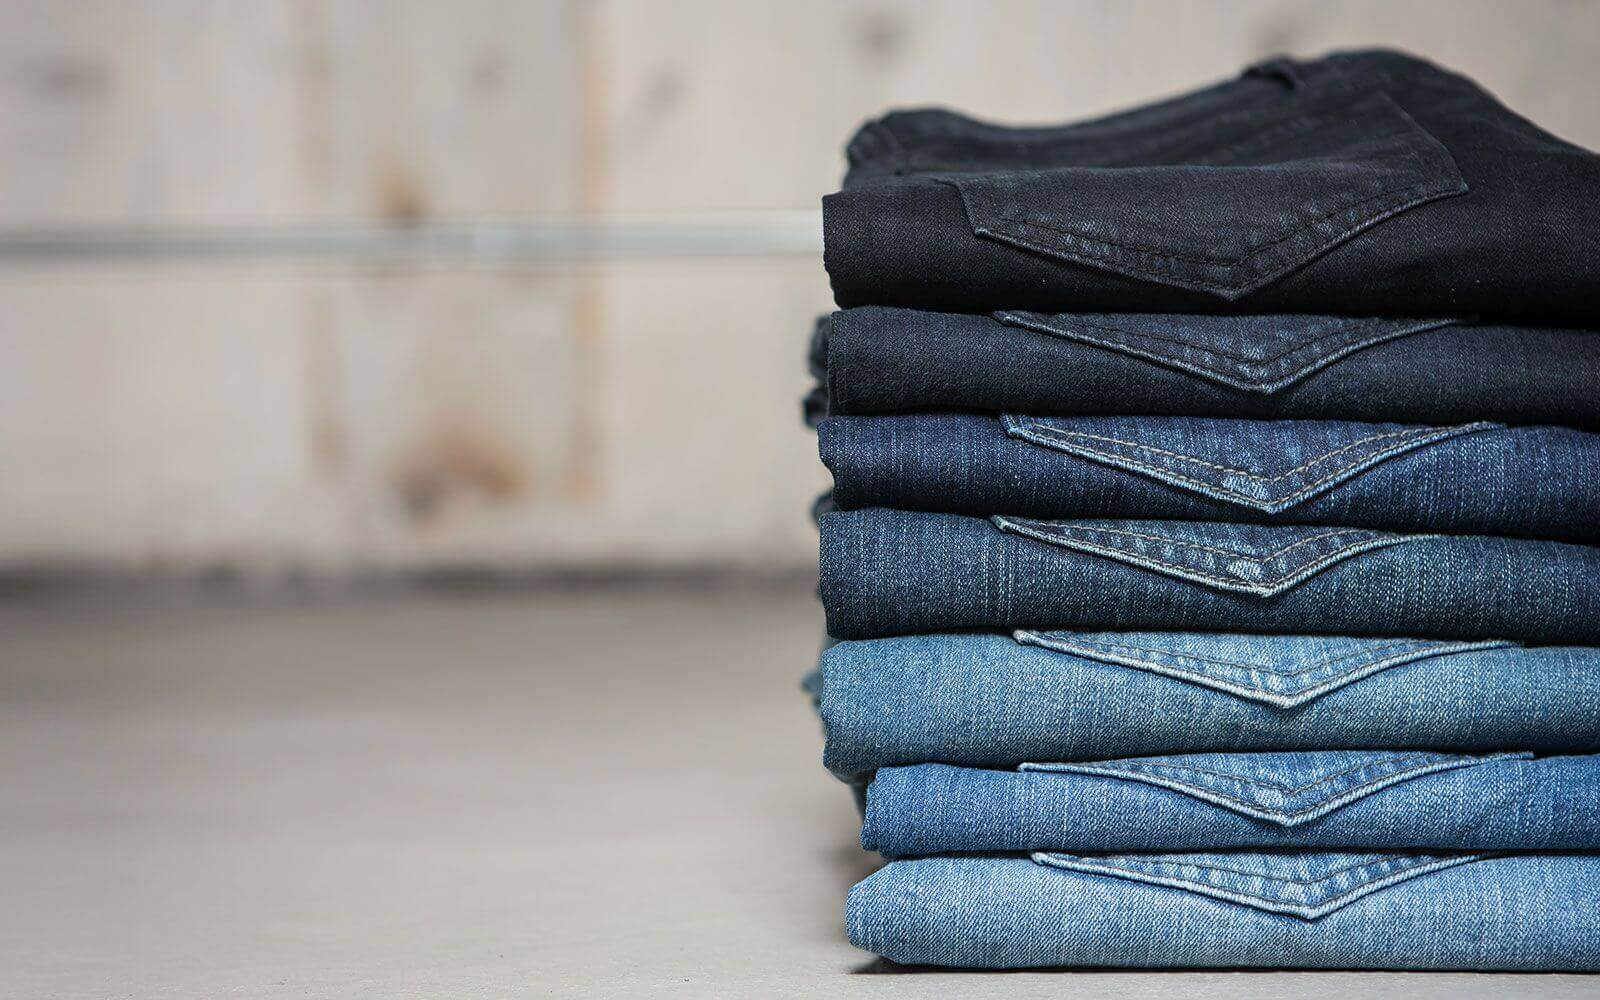 washed-jeans-stack